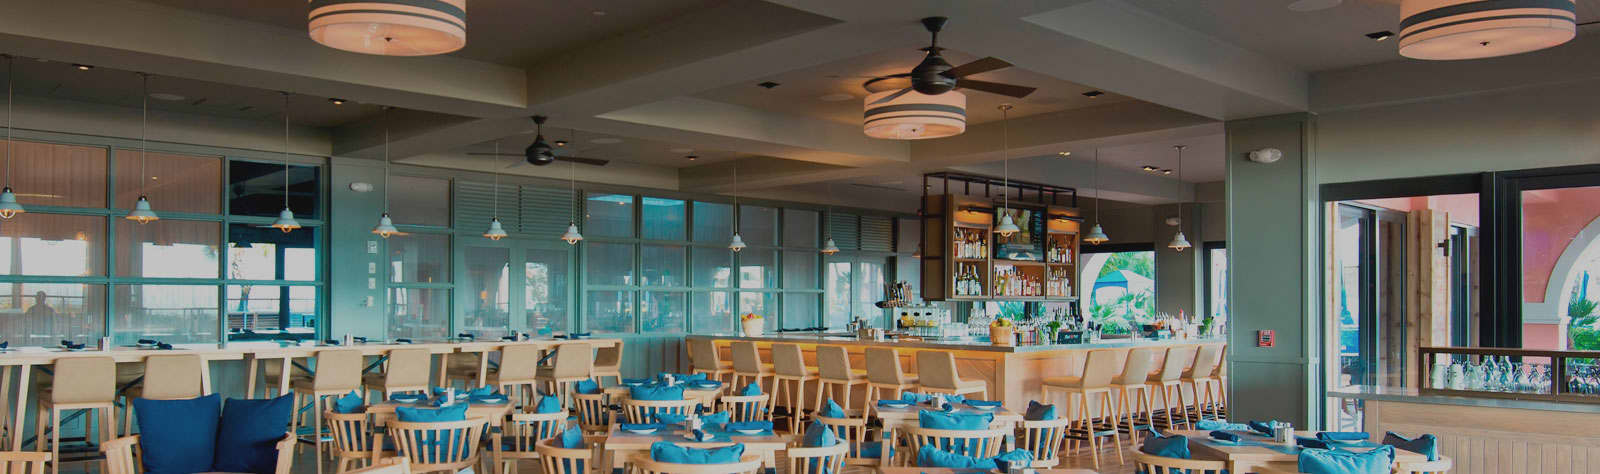 Dining Facilities in Florida Hotel